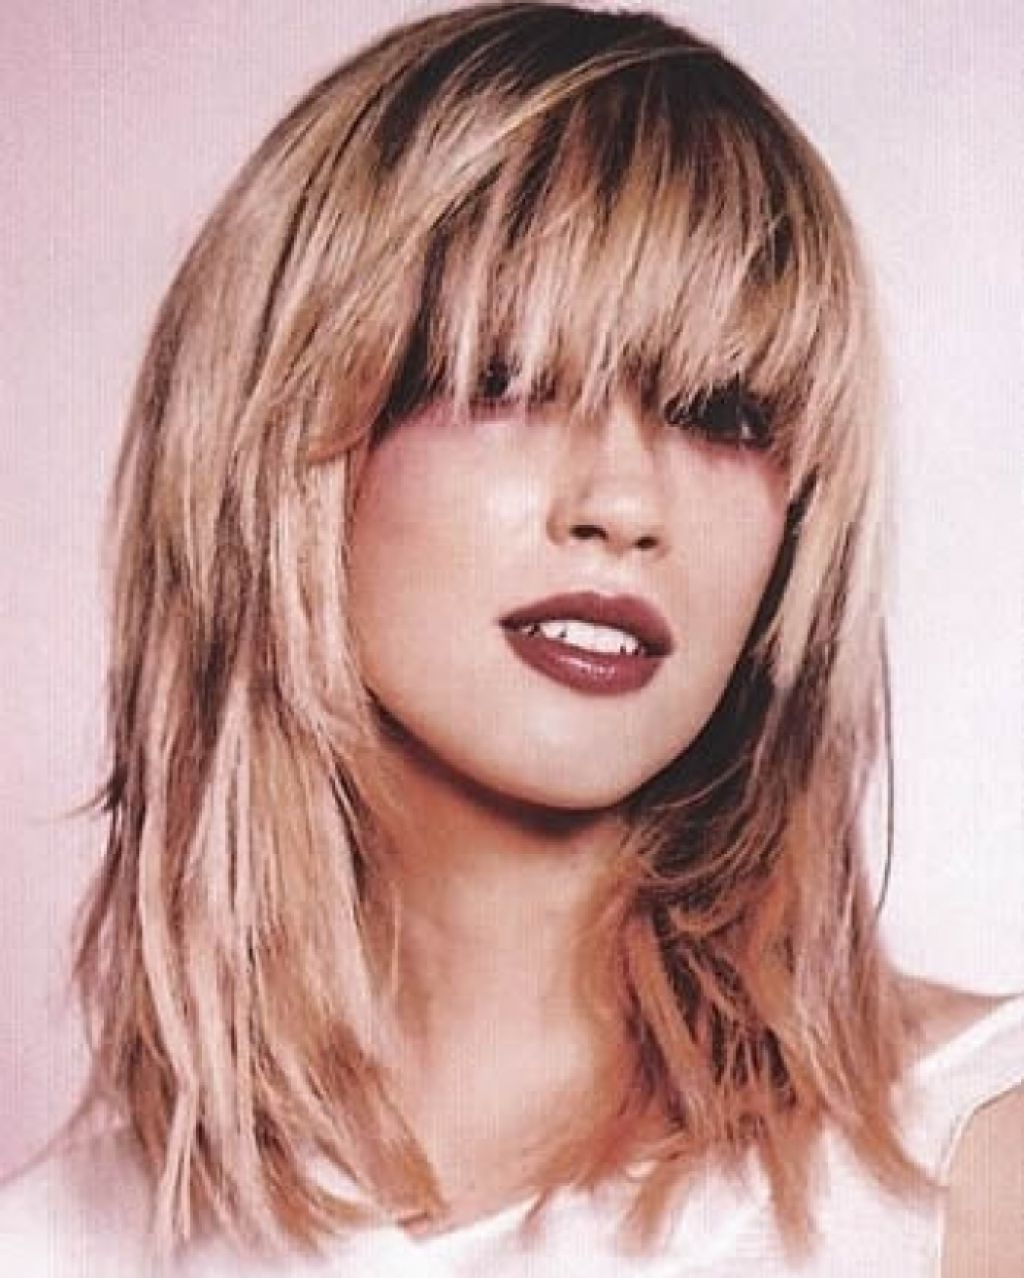 Latest Shaggy Layered Hairstyles For Long Hair Pertaining To Shags With Bangs Layered Shaggy Long Hairstyles Black Hair Collection (View 4 of 15)